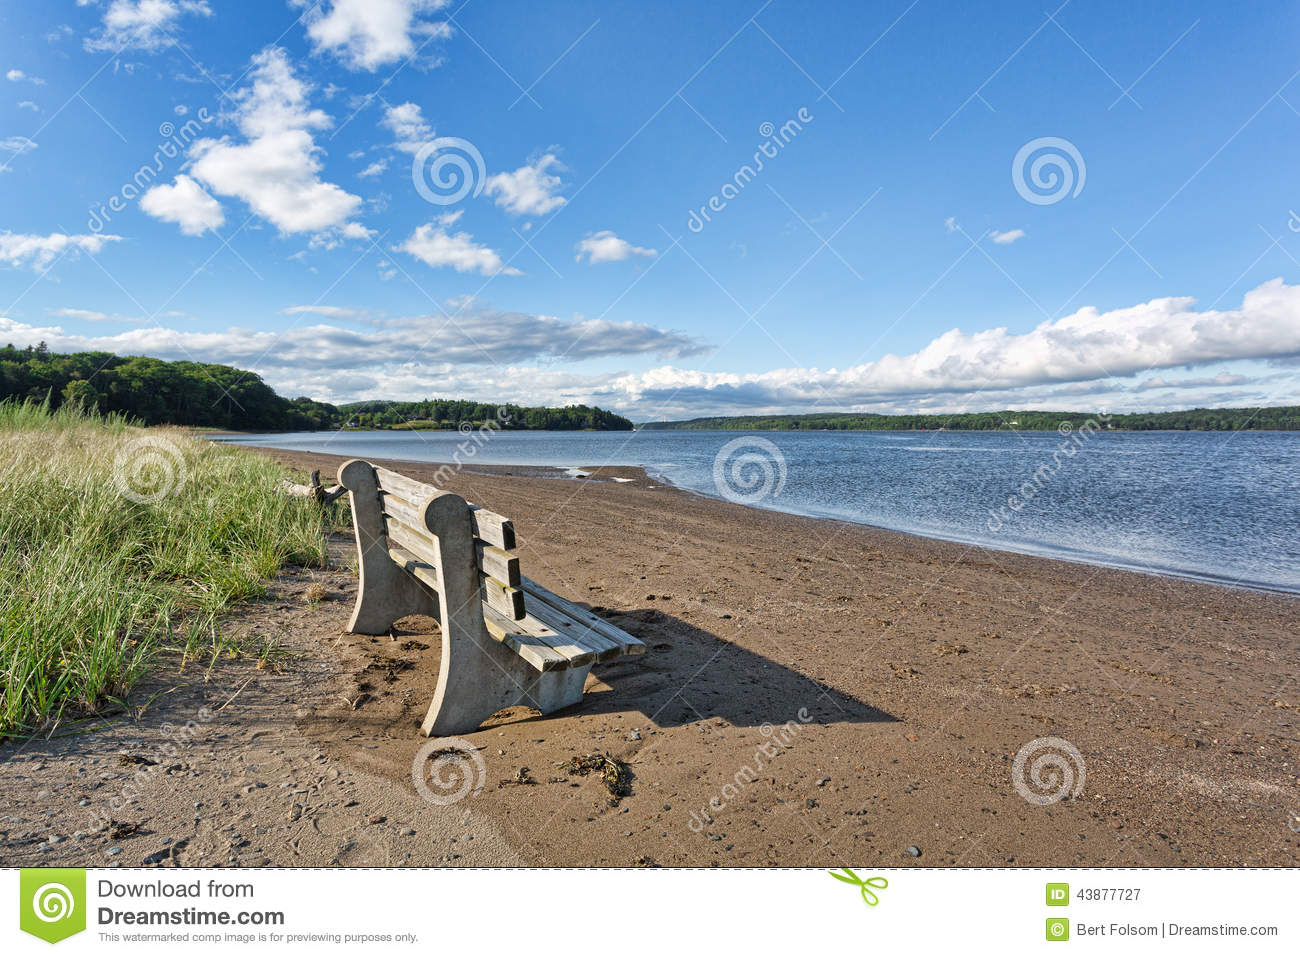 Old Bench On Beach With River In Background Stock Photo - Image ...